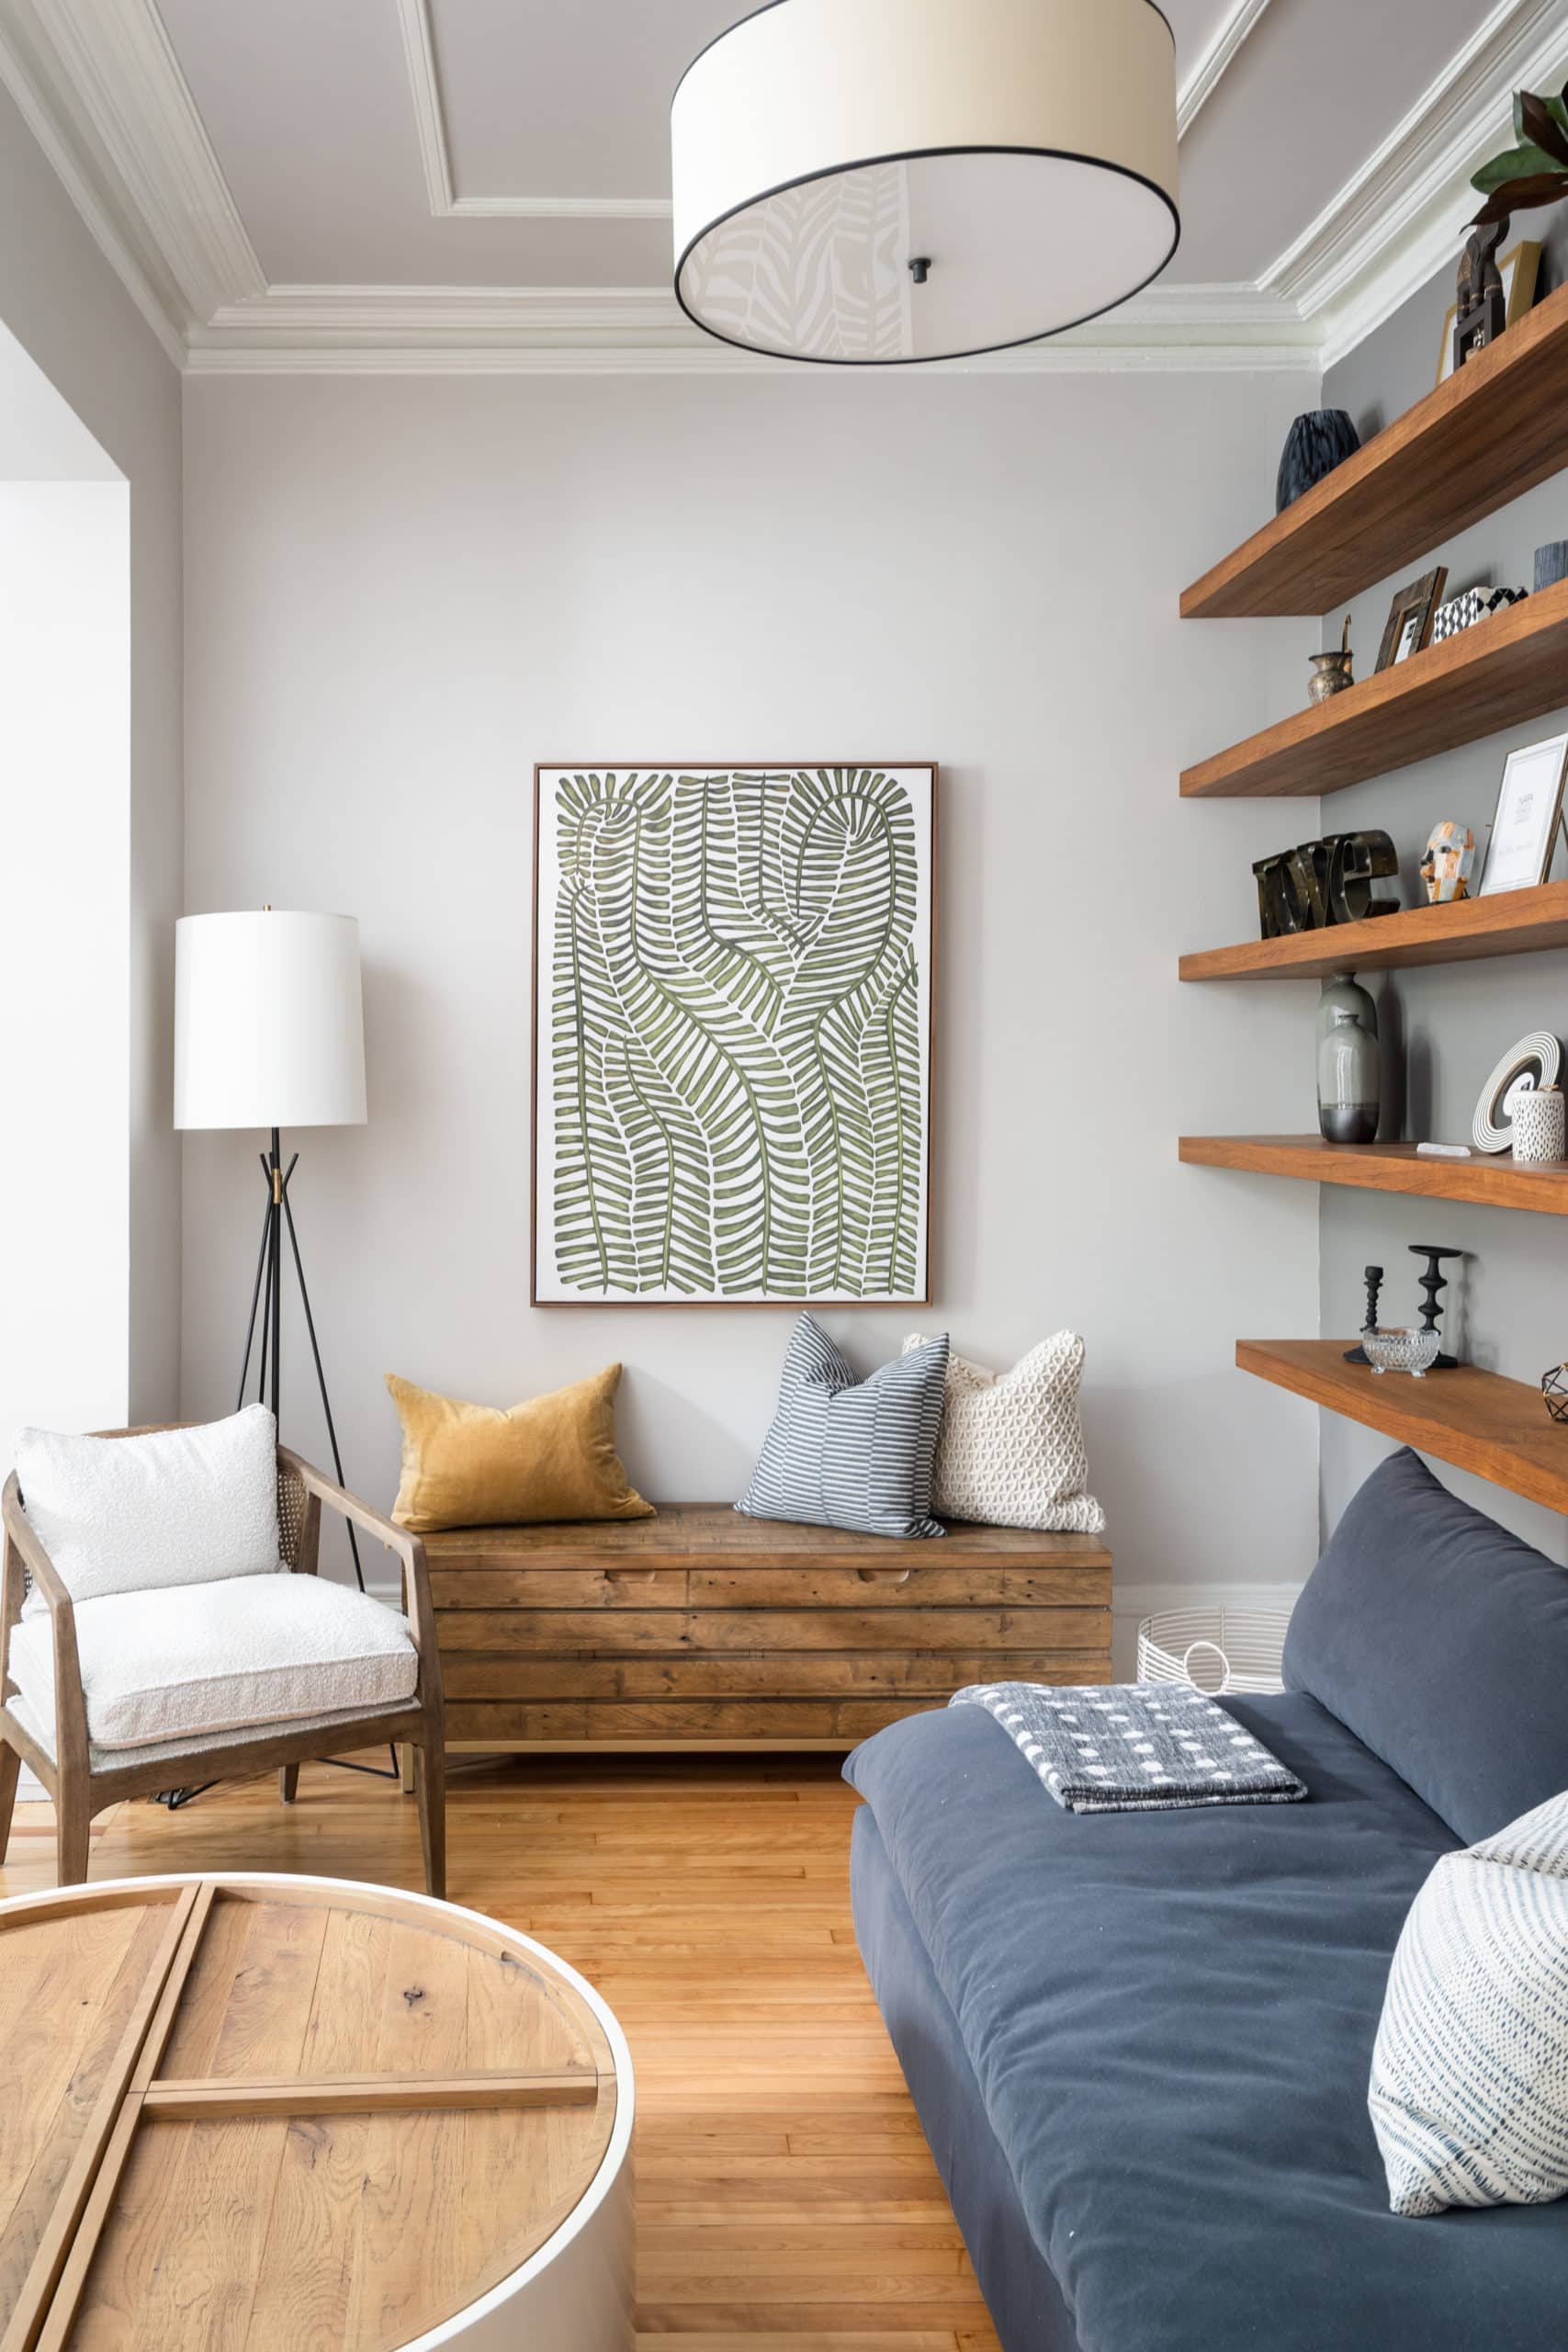 Small, cozy corner of a living with a small wooden bench